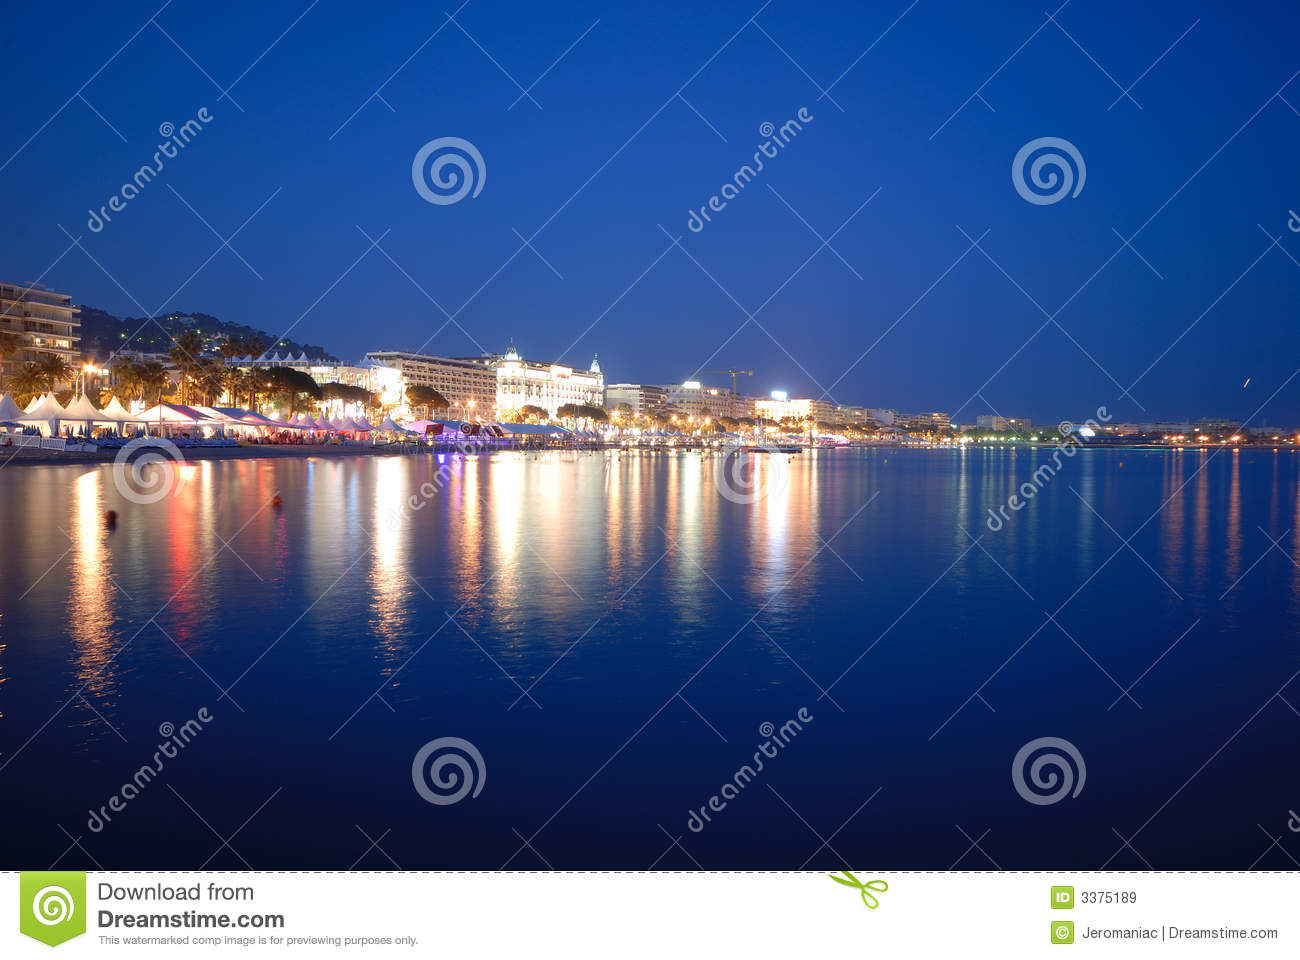 cannes festival by night royalty free stock images image 3375189. Black Bedroom Furniture Sets. Home Design Ideas